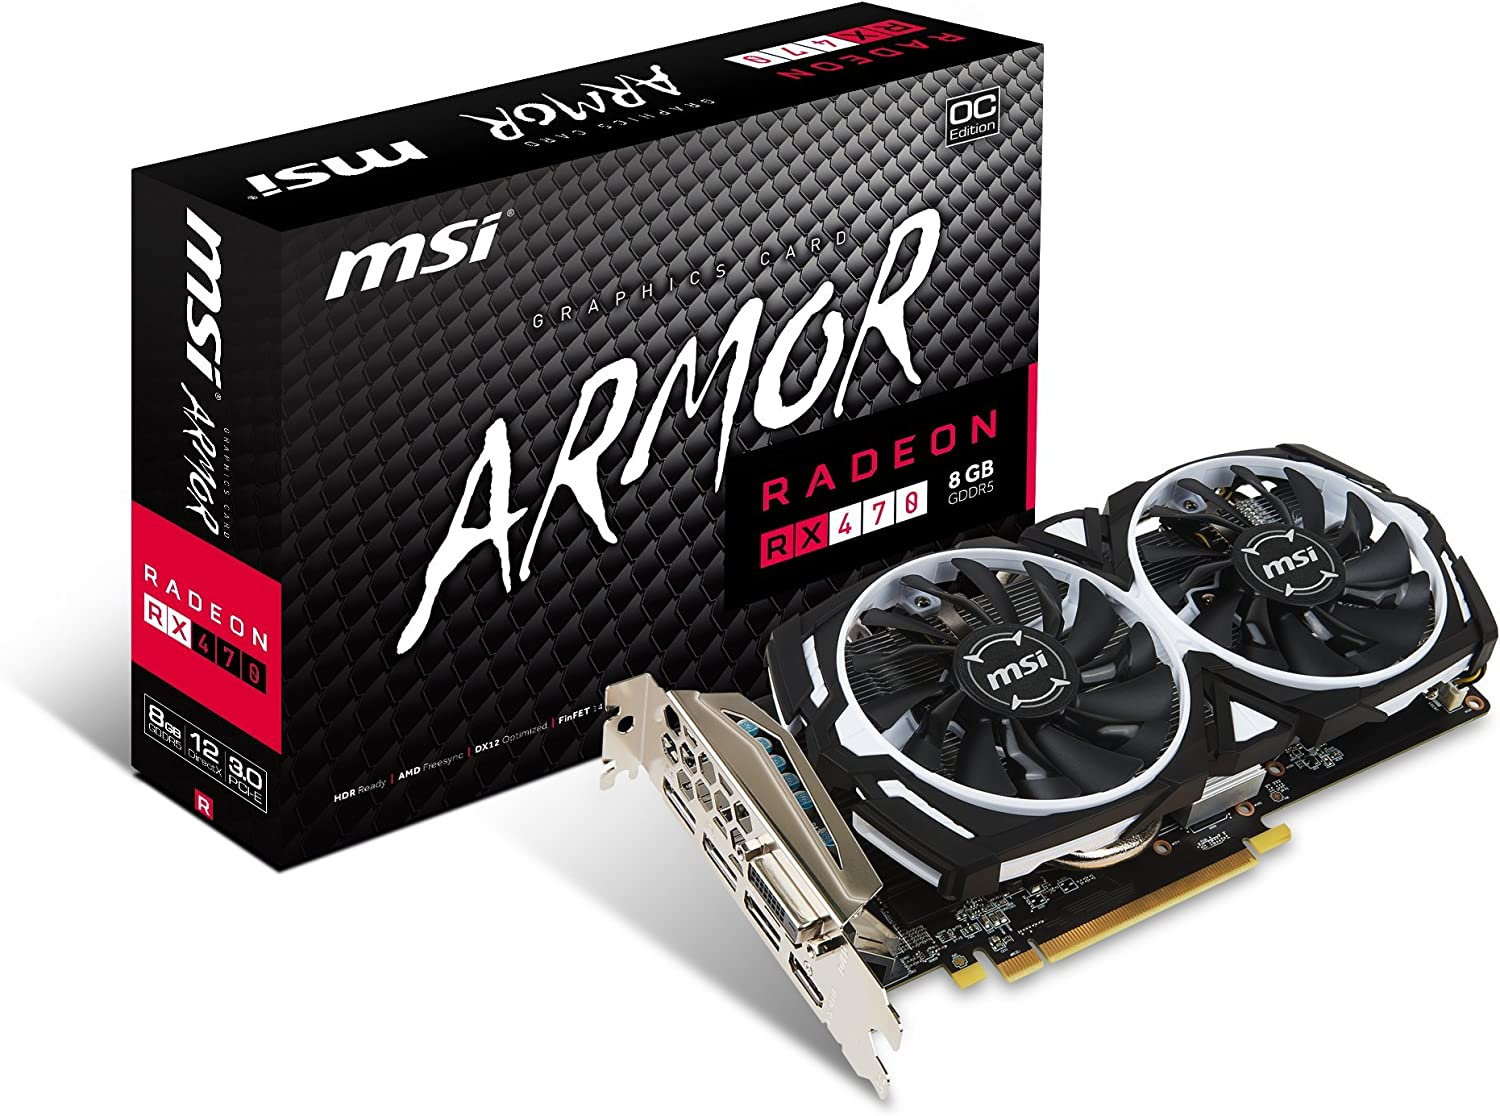 MSI GAMING Radeon RX 470 GDDR5 8GB CrossFire FinFET DirectX 12 Graphics Card (RX 470 ARMOR 8G OC)